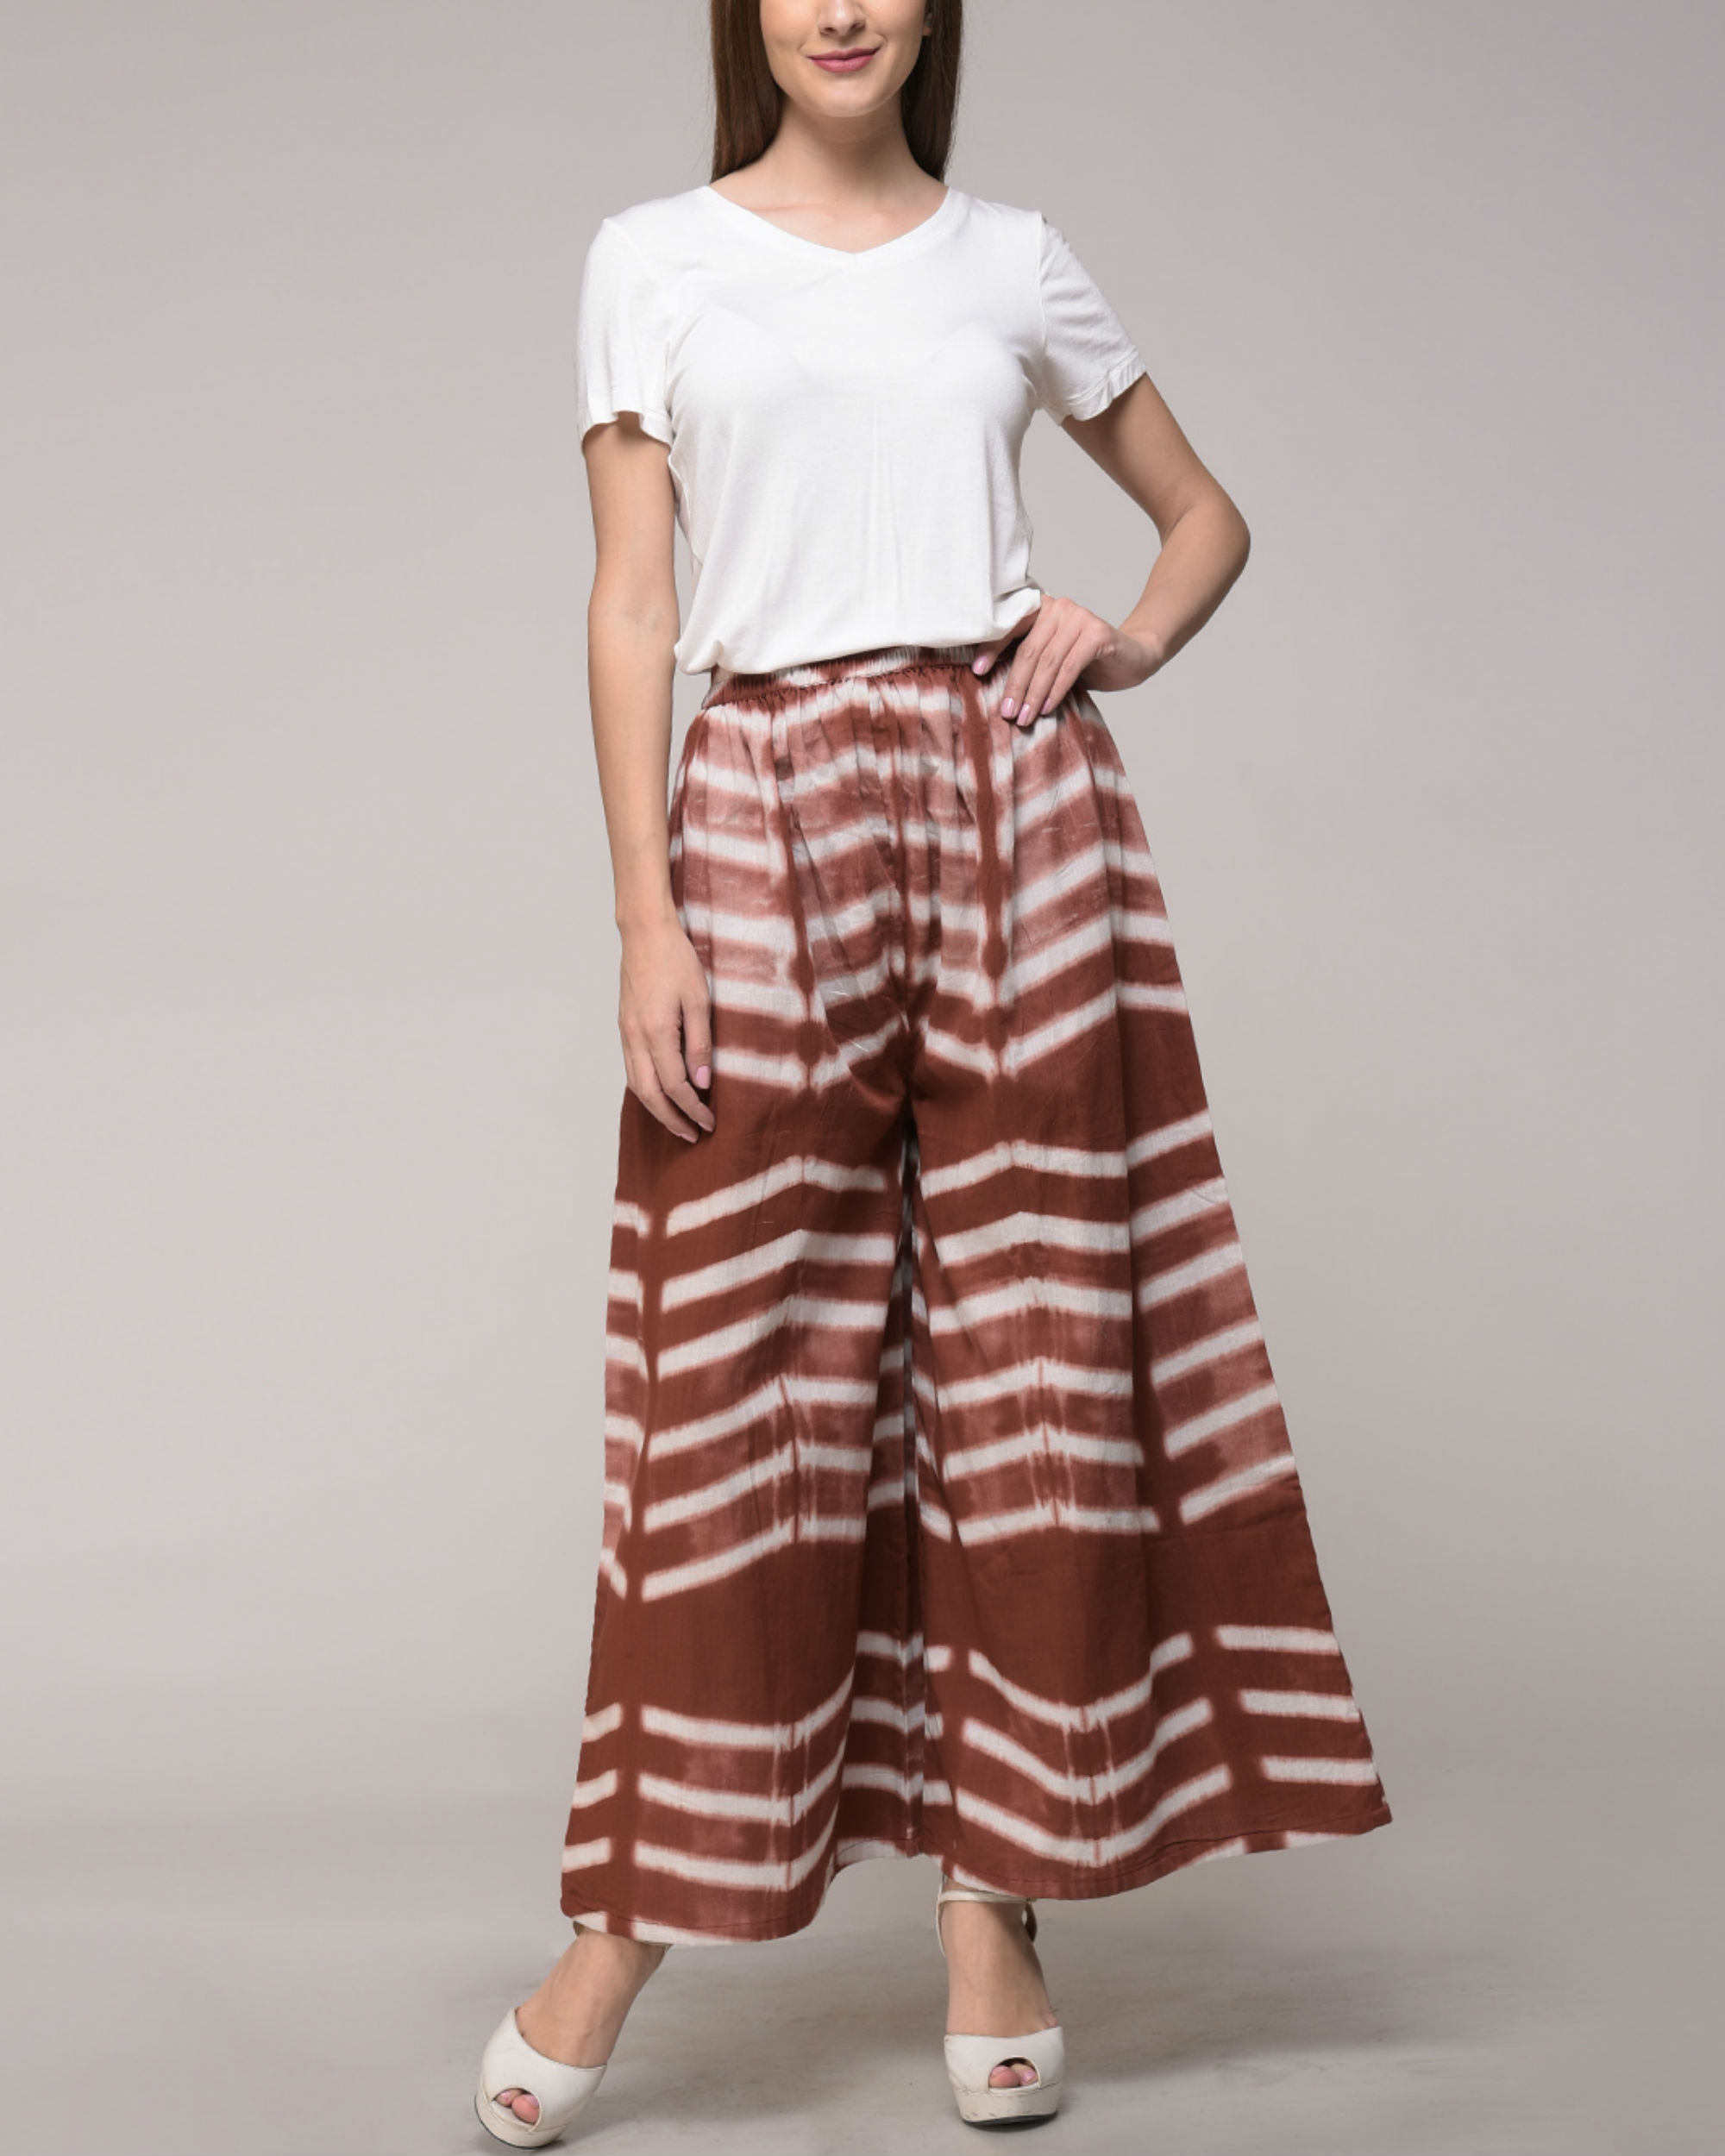 Clamp dyed brown palazzos